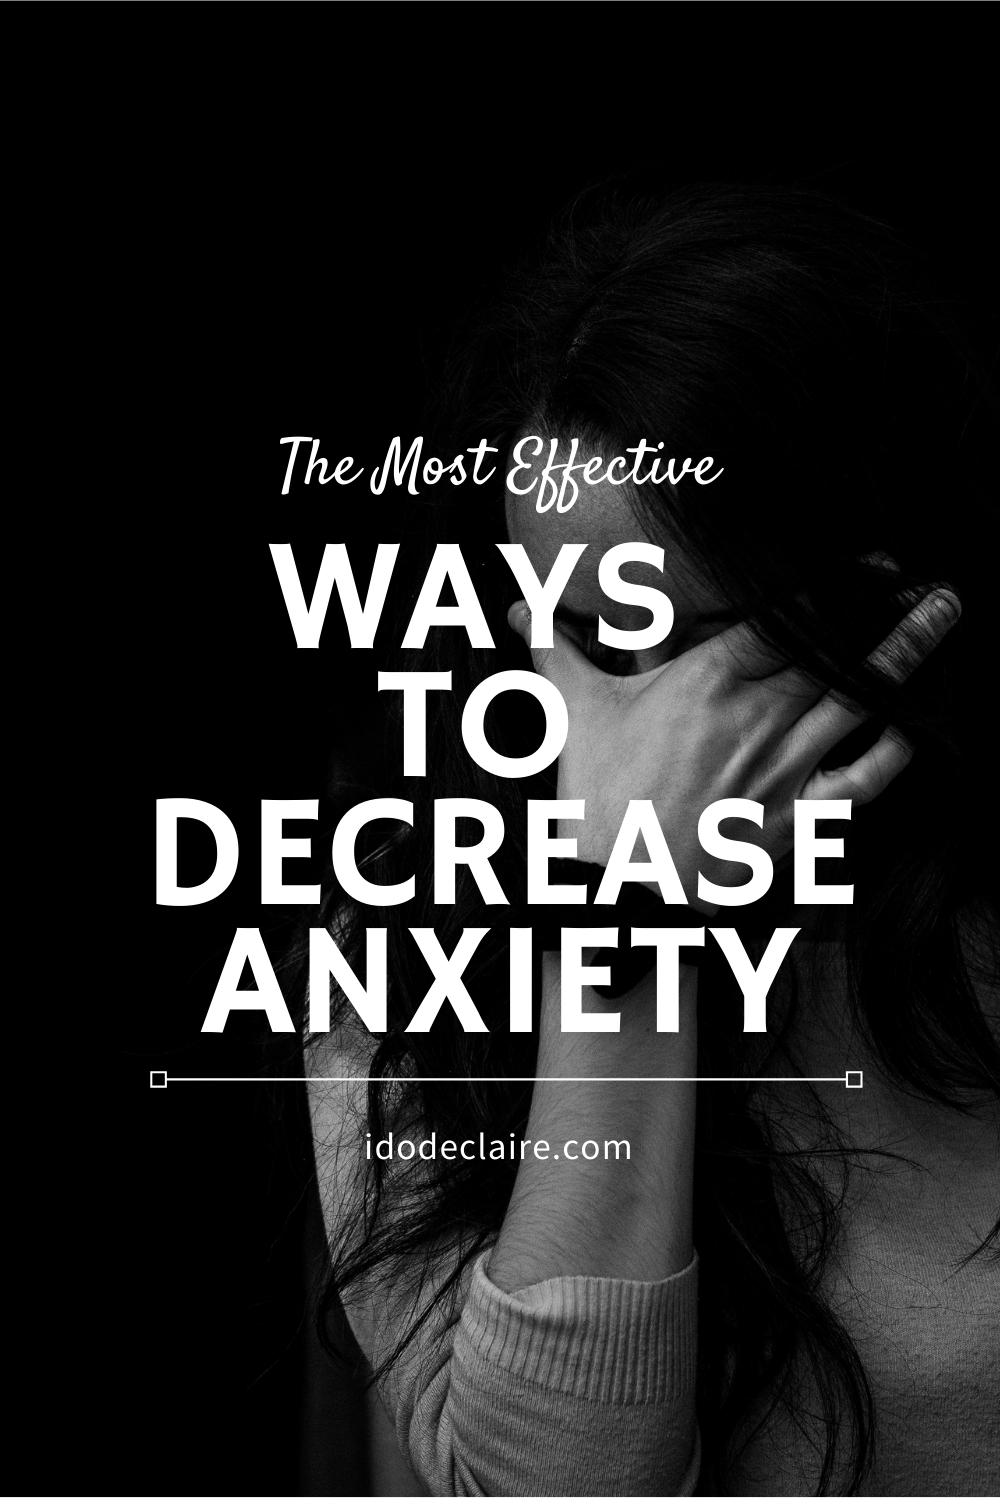 The Most Effective Ways to Reduce Anxiety